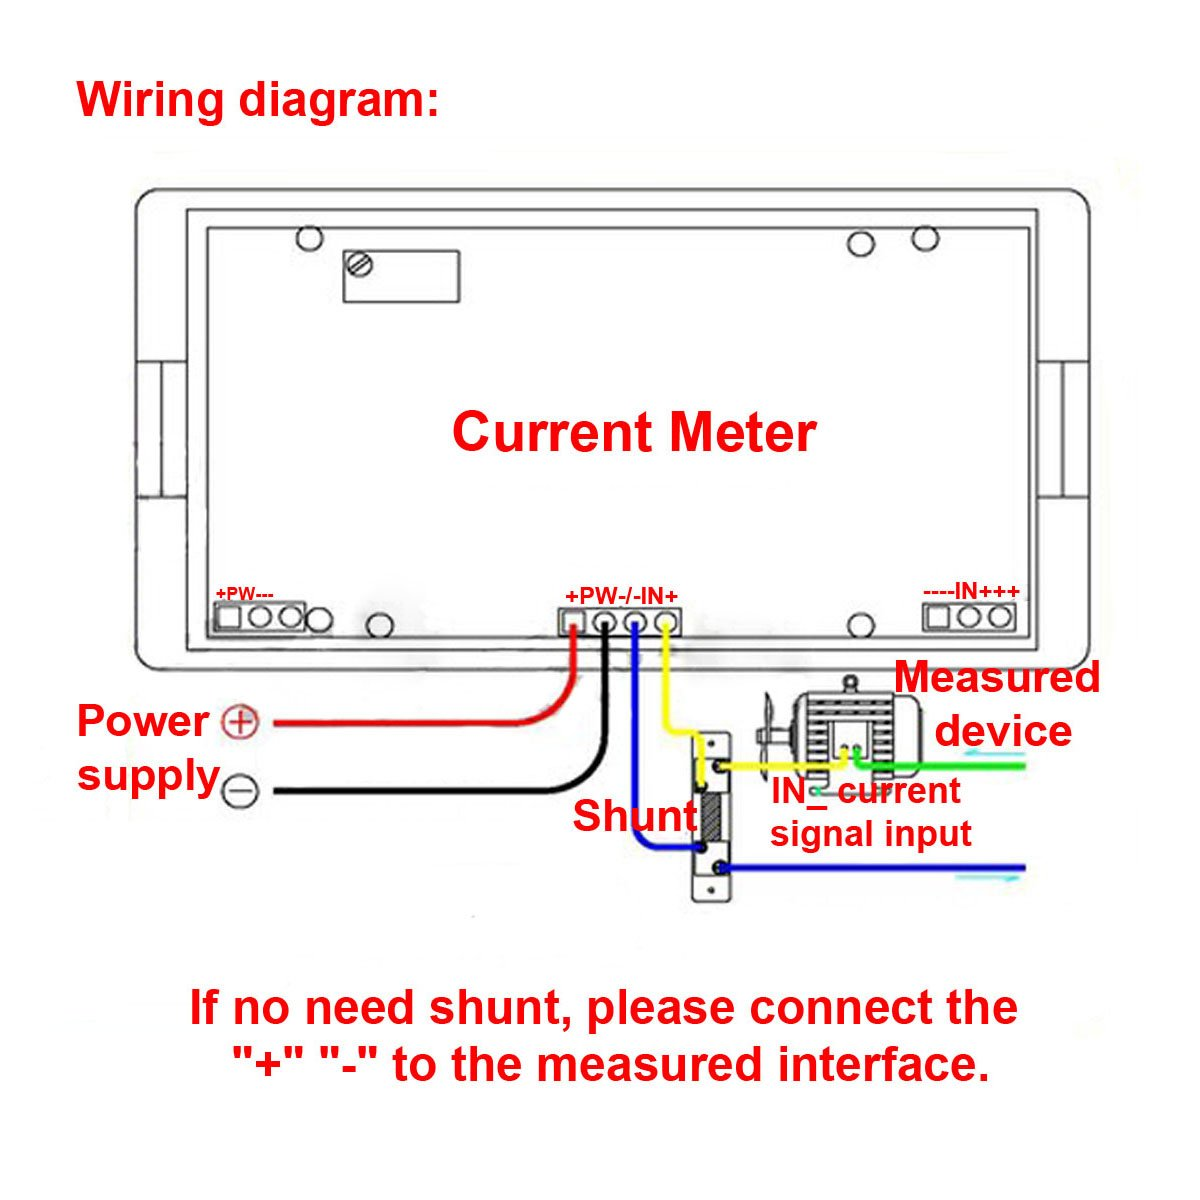 71y4ihHRXiL._SL1200_ drok wiring diagram drok power supply \u2022 wiring diagrams j squared co ac amp meter wiring diagram at crackthecode.co